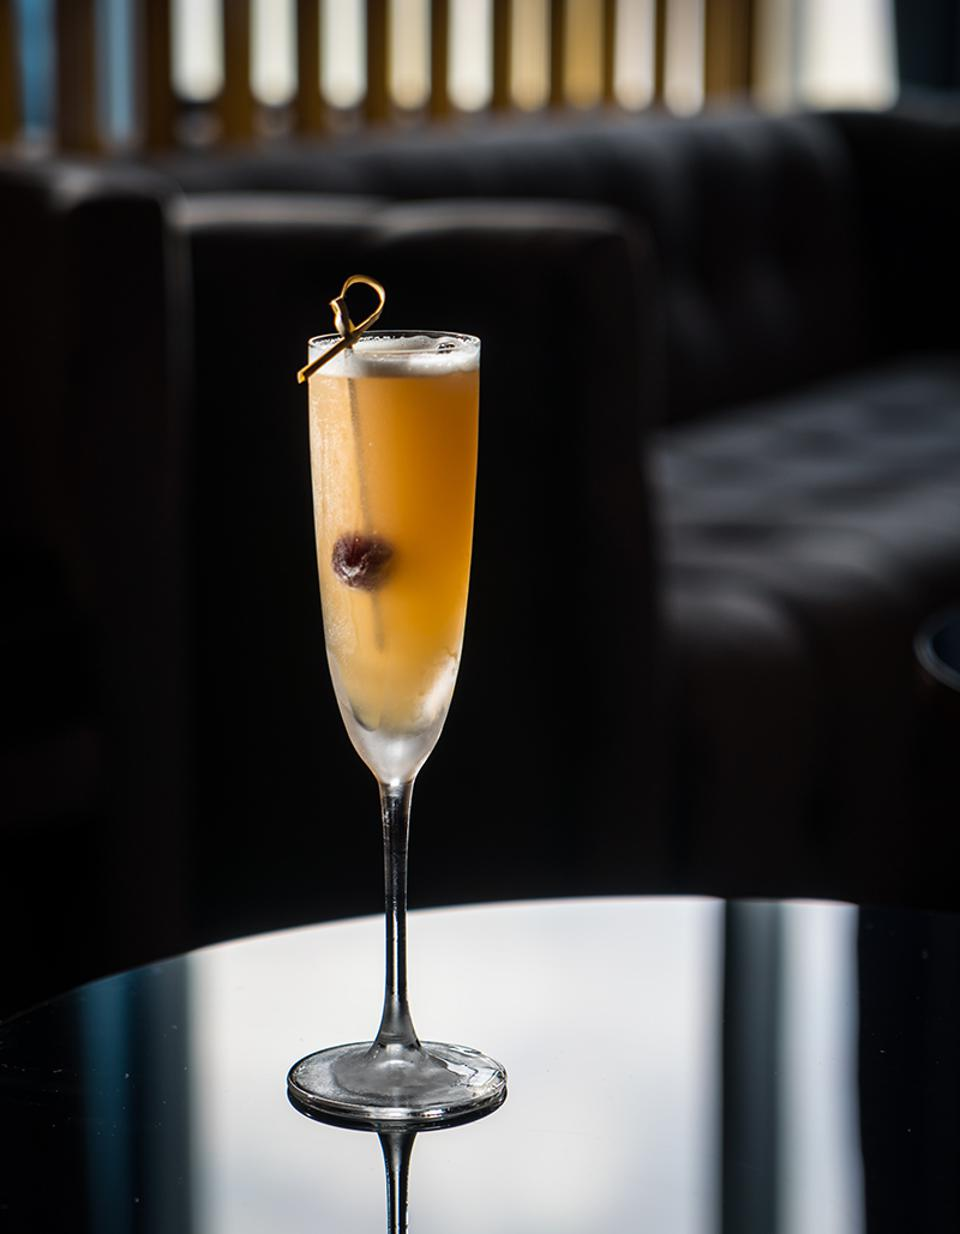 The Morning Glory Fizz at Lyaness.